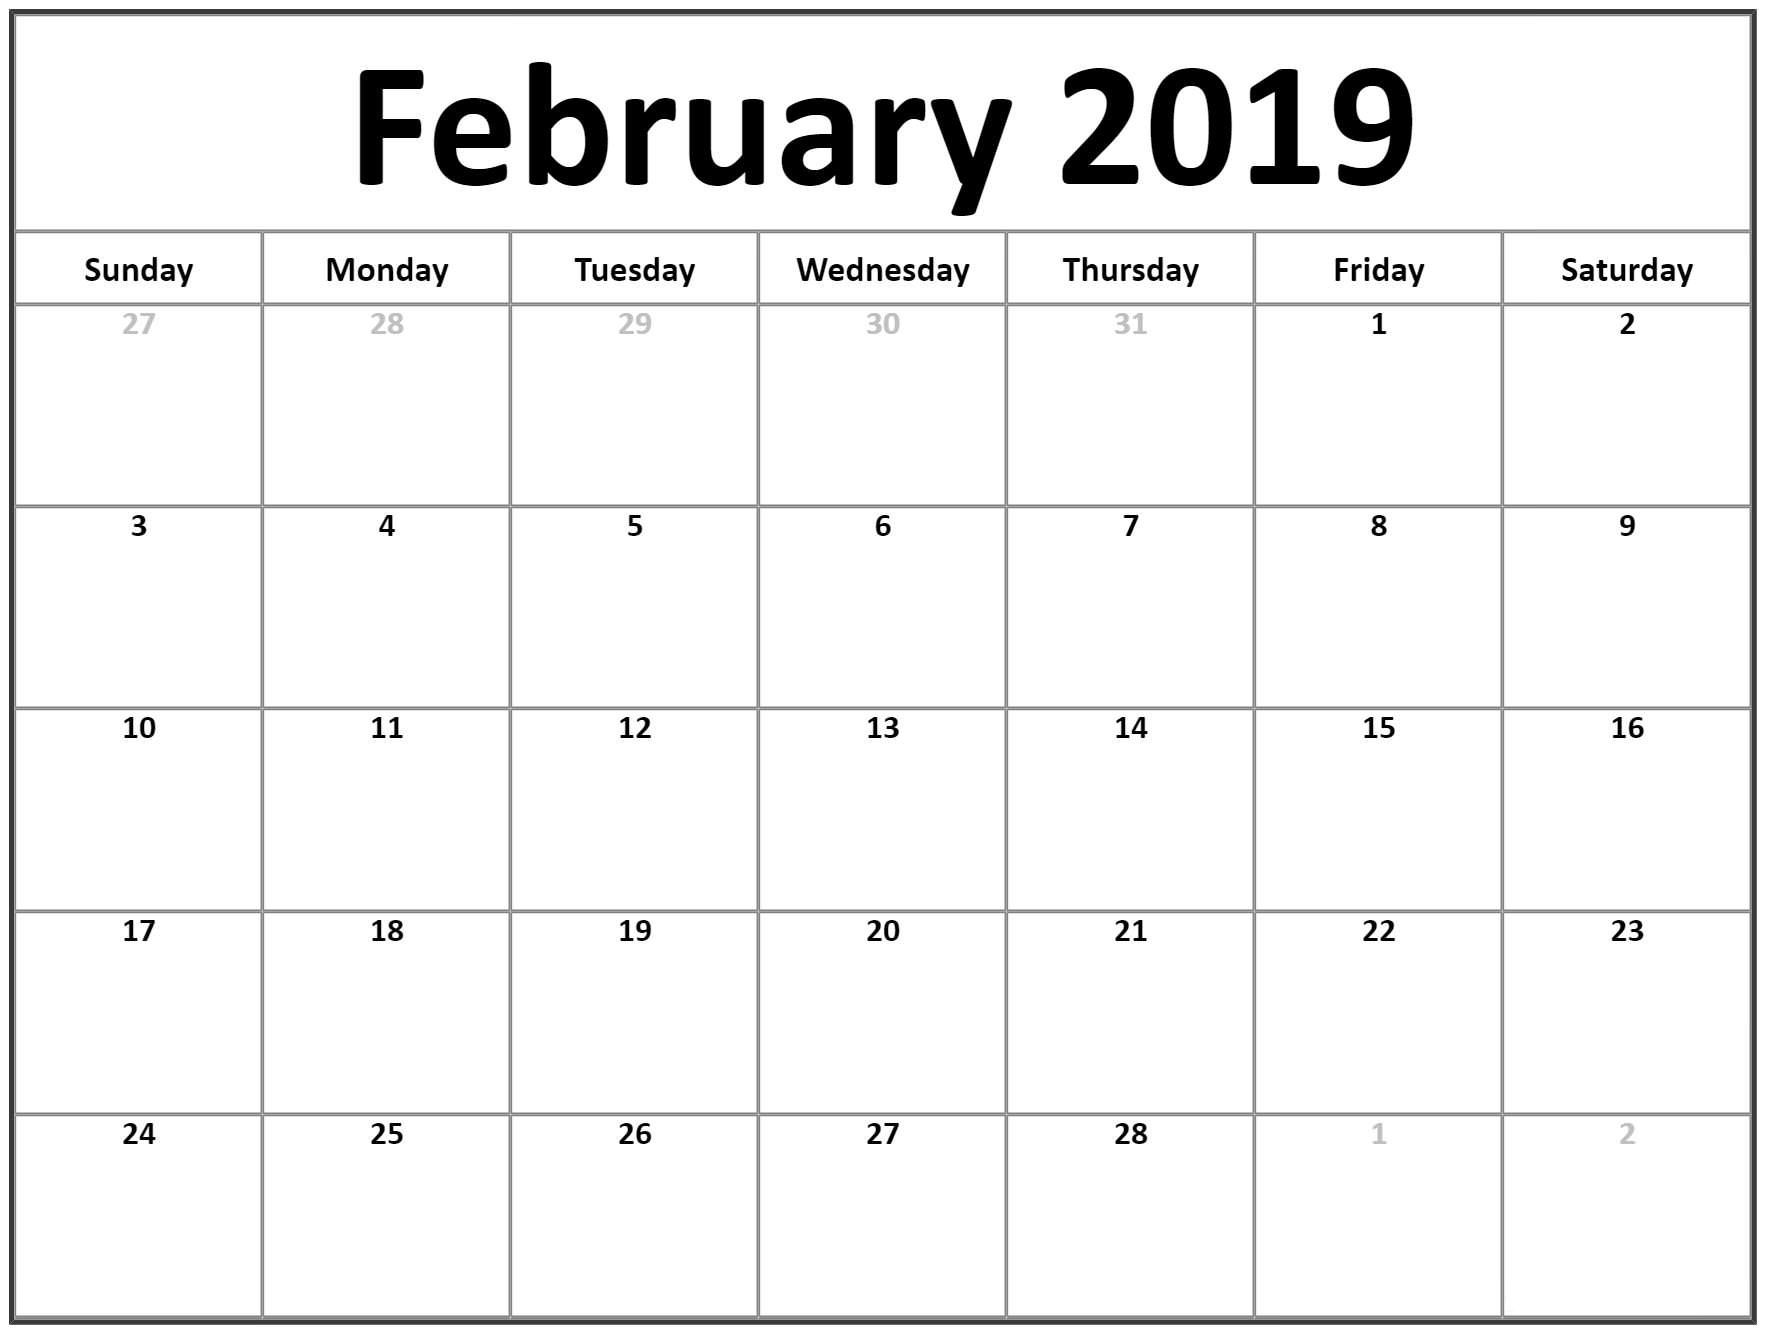 February Calendar 2019.February Calendar 2019 For Office February Calendar 2019 Manage